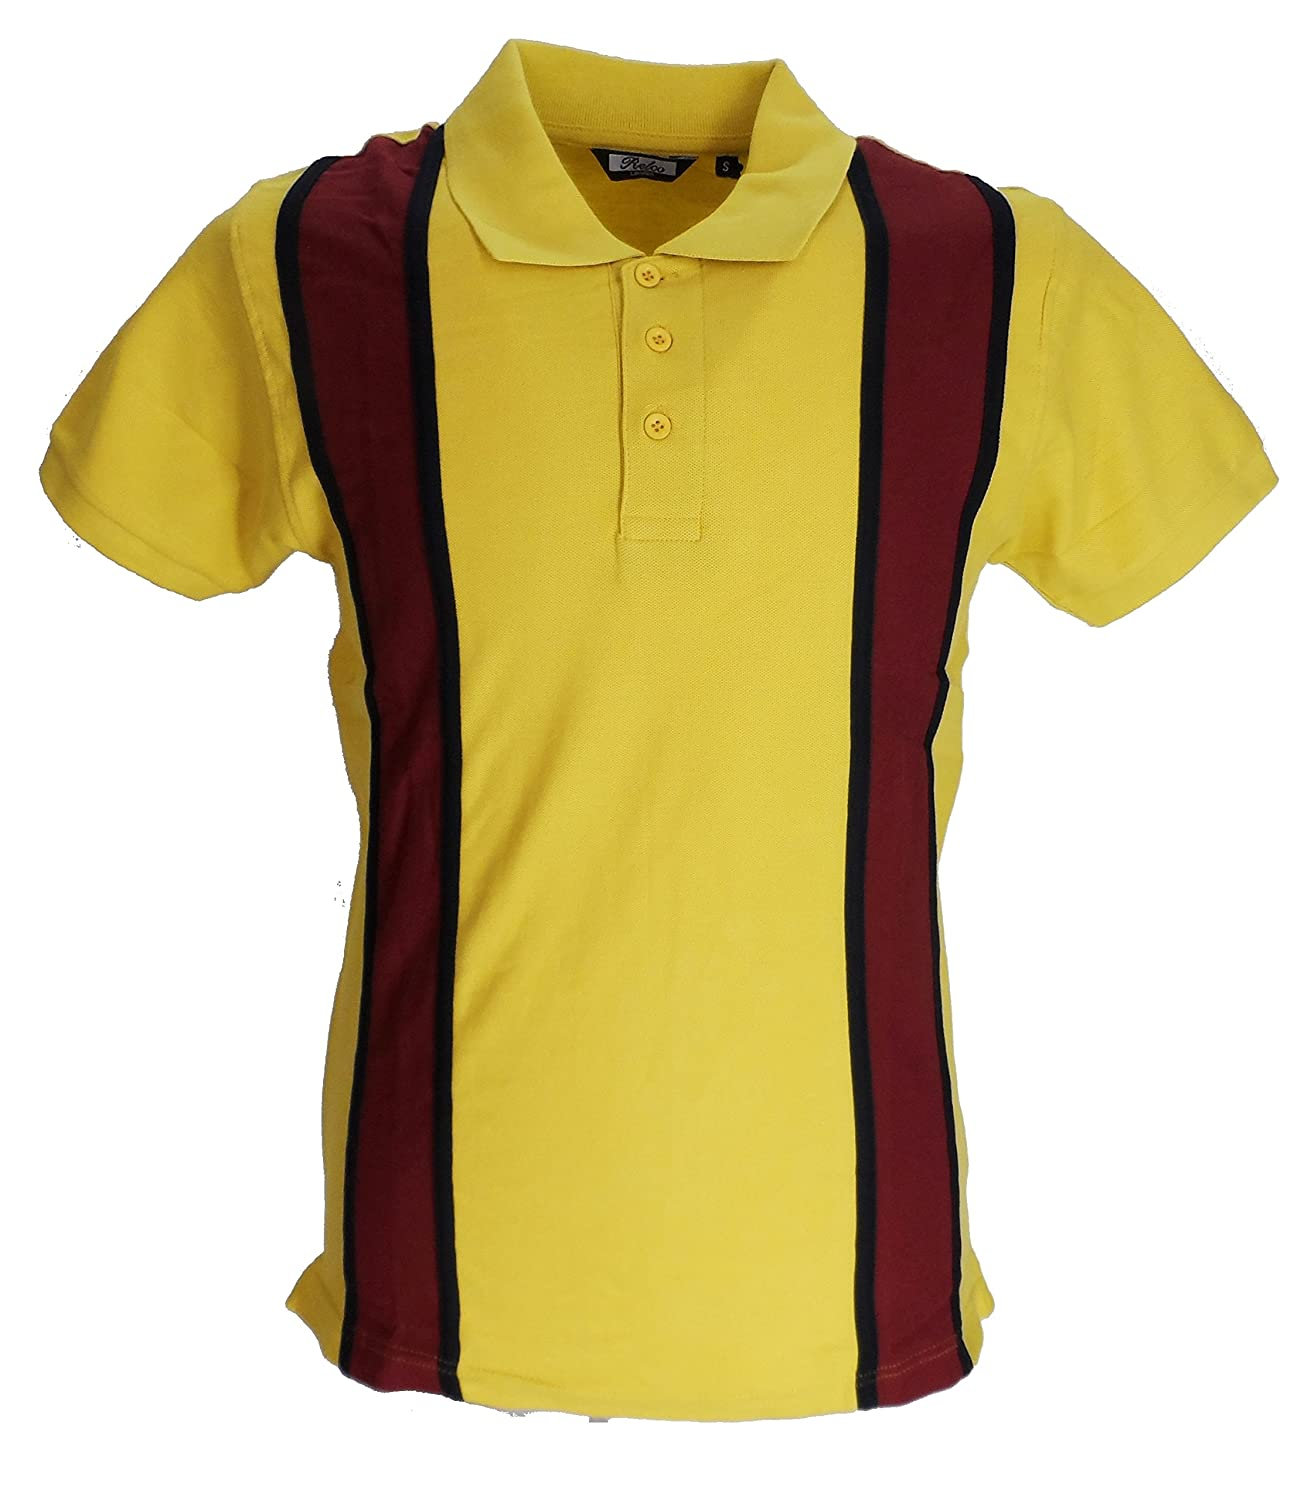 1950s Men's Clothing Relco Mens Striped Vintage Polo Shirts Mustard/Burgundy £24.99 AT vintagedancer.com